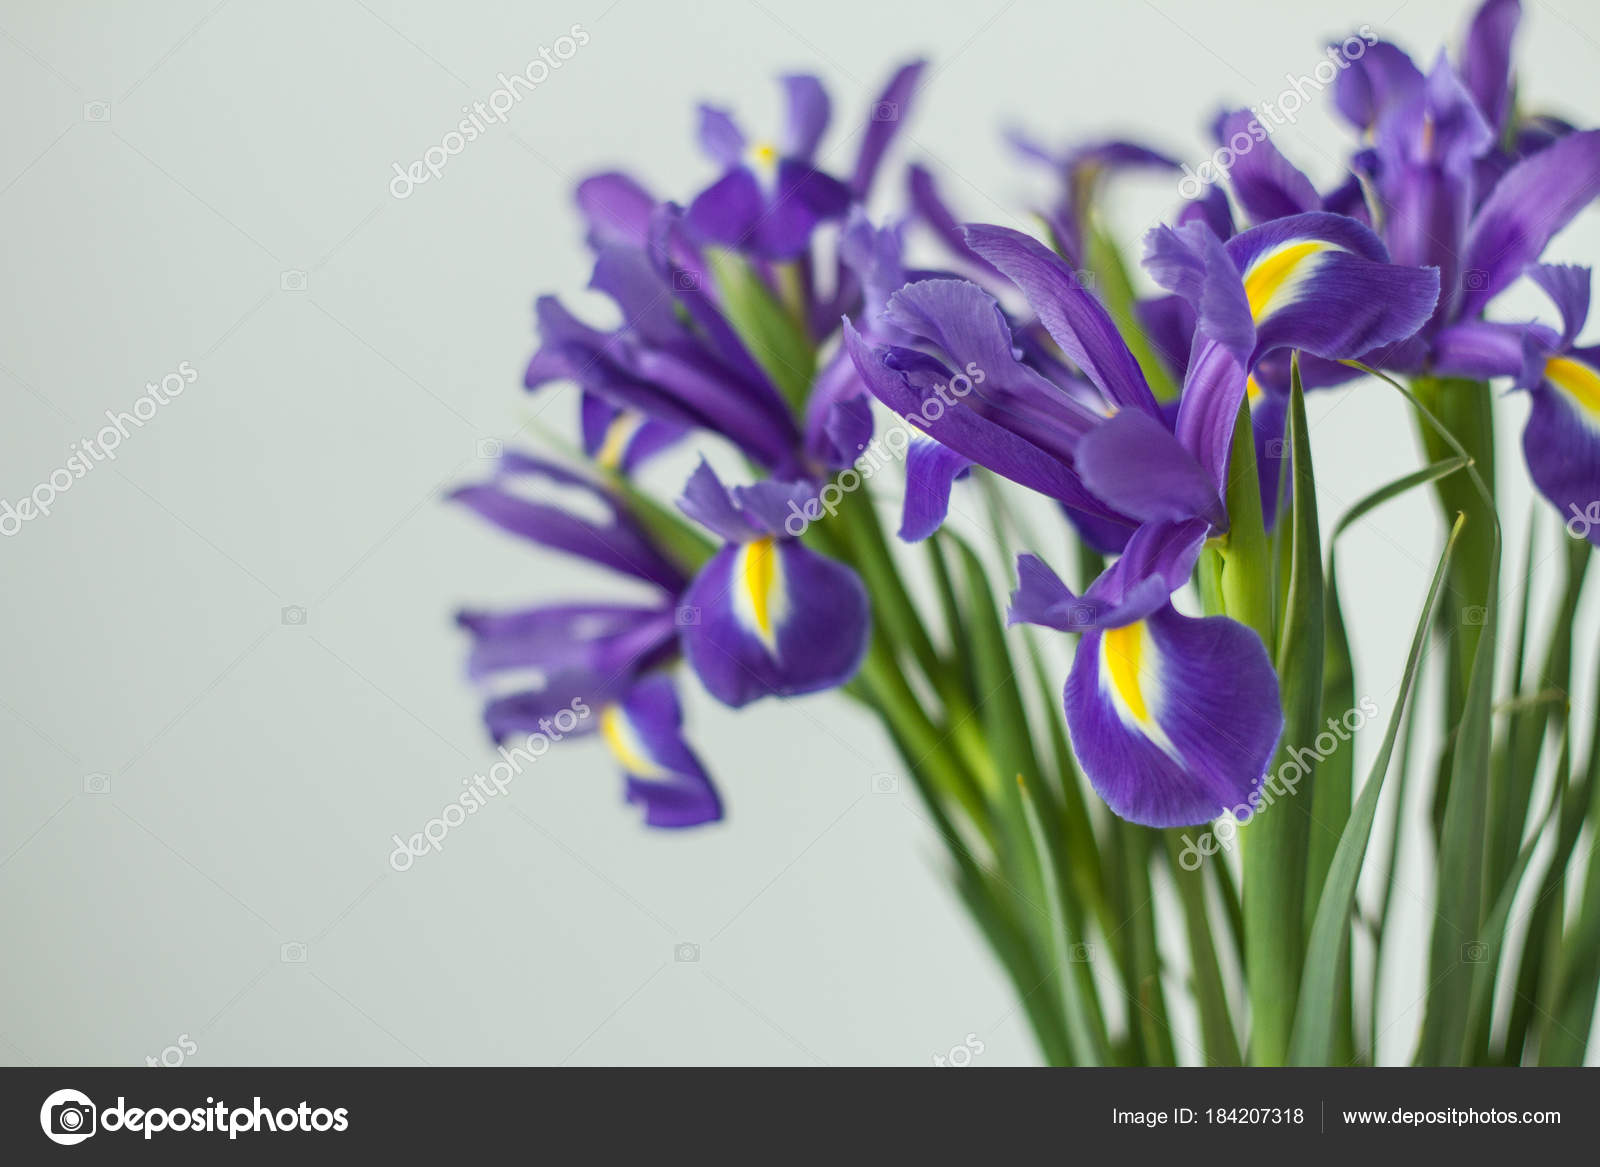 Delicate holiday bouquet iris flowers light background stock photo delicate holiday bouquet iris flowers light background stock photo izmirmasajfo